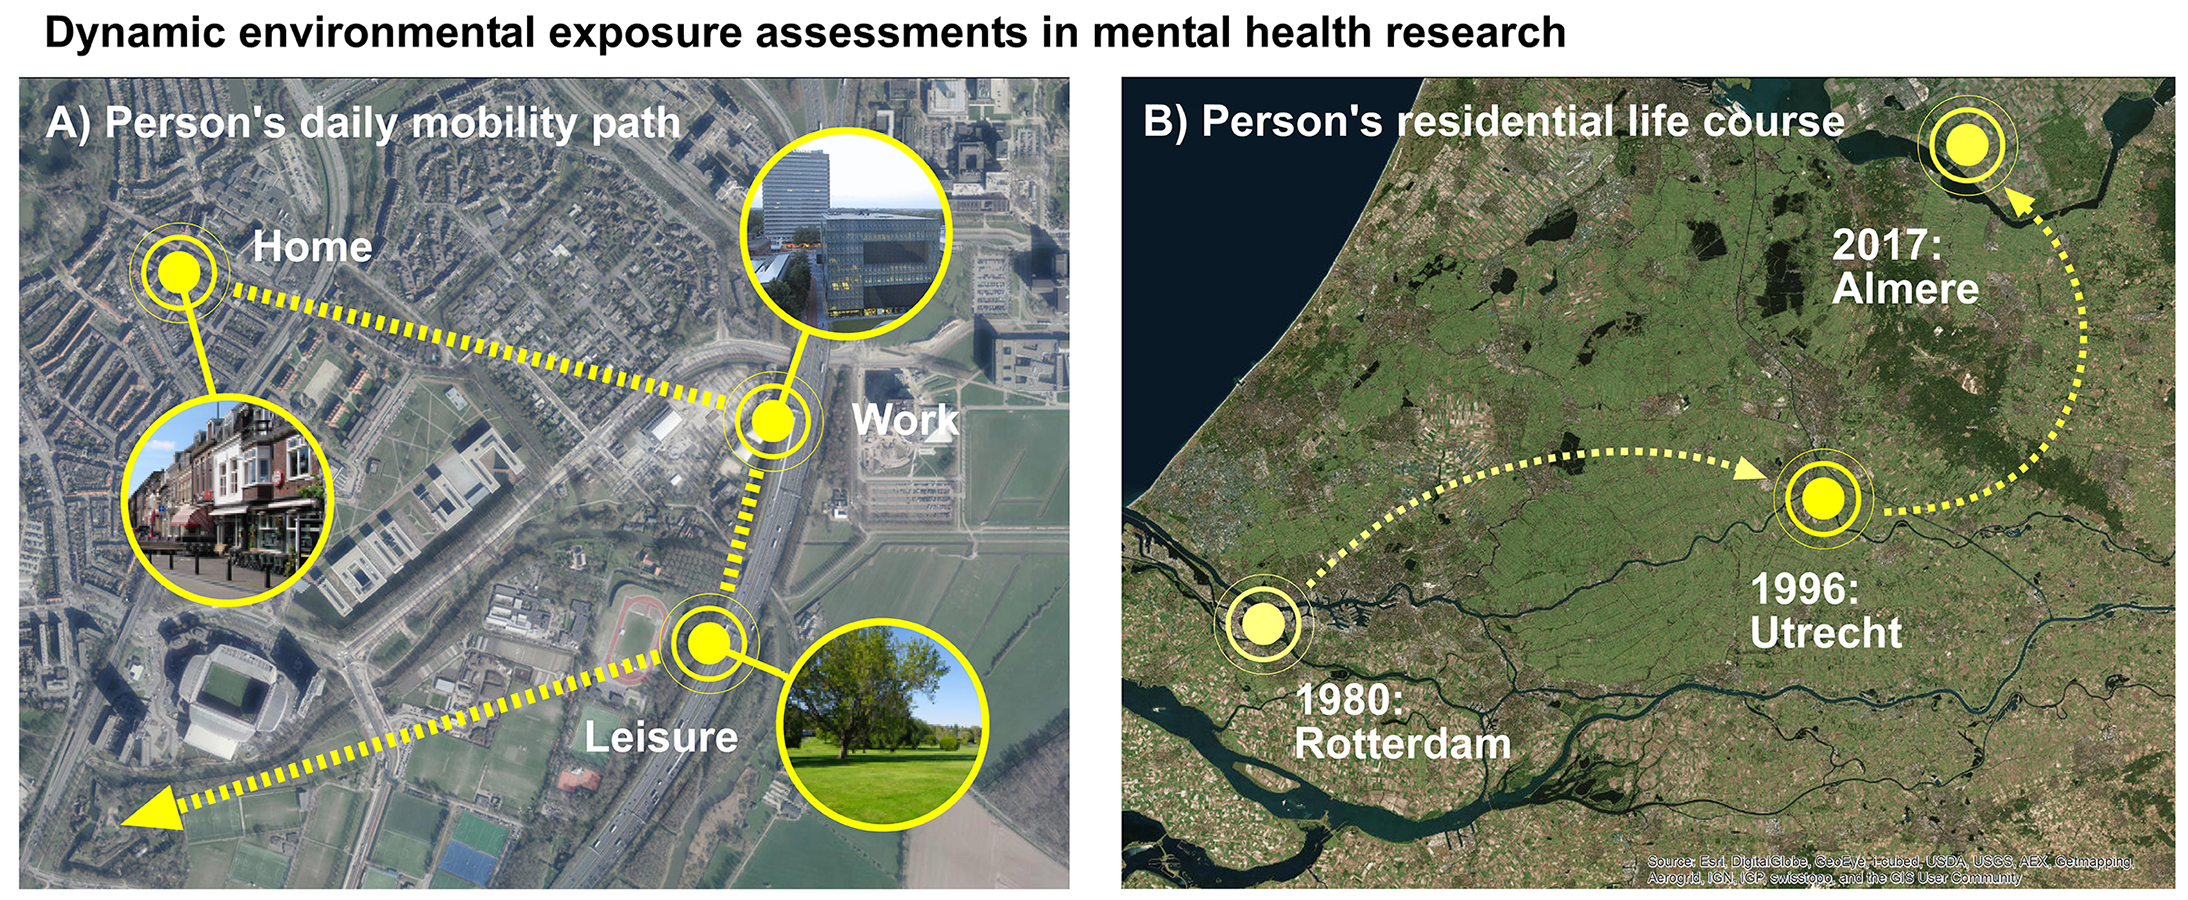 Research on the link between environment and mental health doesn't take into account the differences over the course of a day or their whole life. Image credit - NEEDS